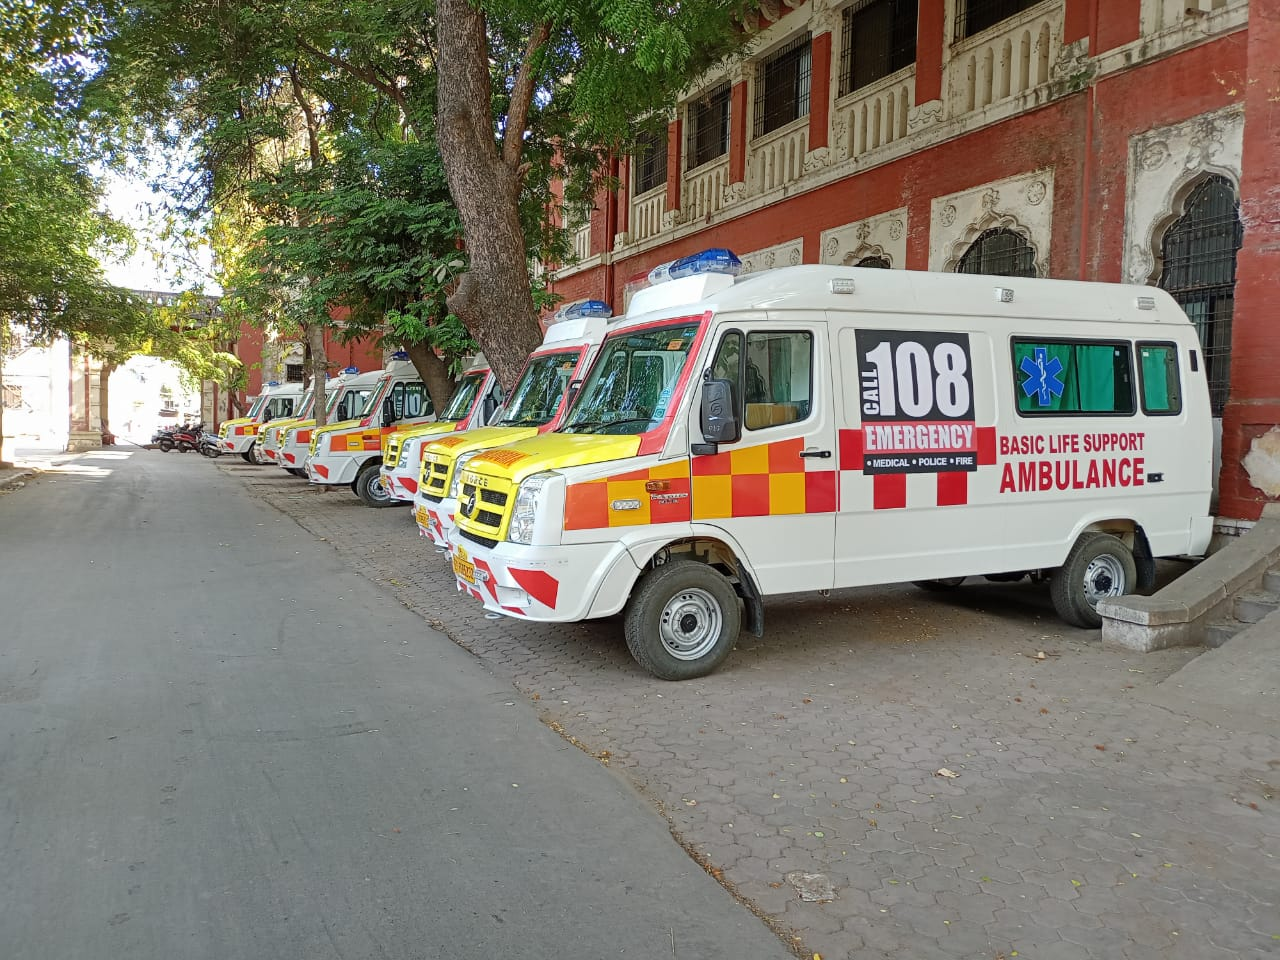 Wheels of 108 ambulances kept moving in April to shift patients to the hospital in Vadodara